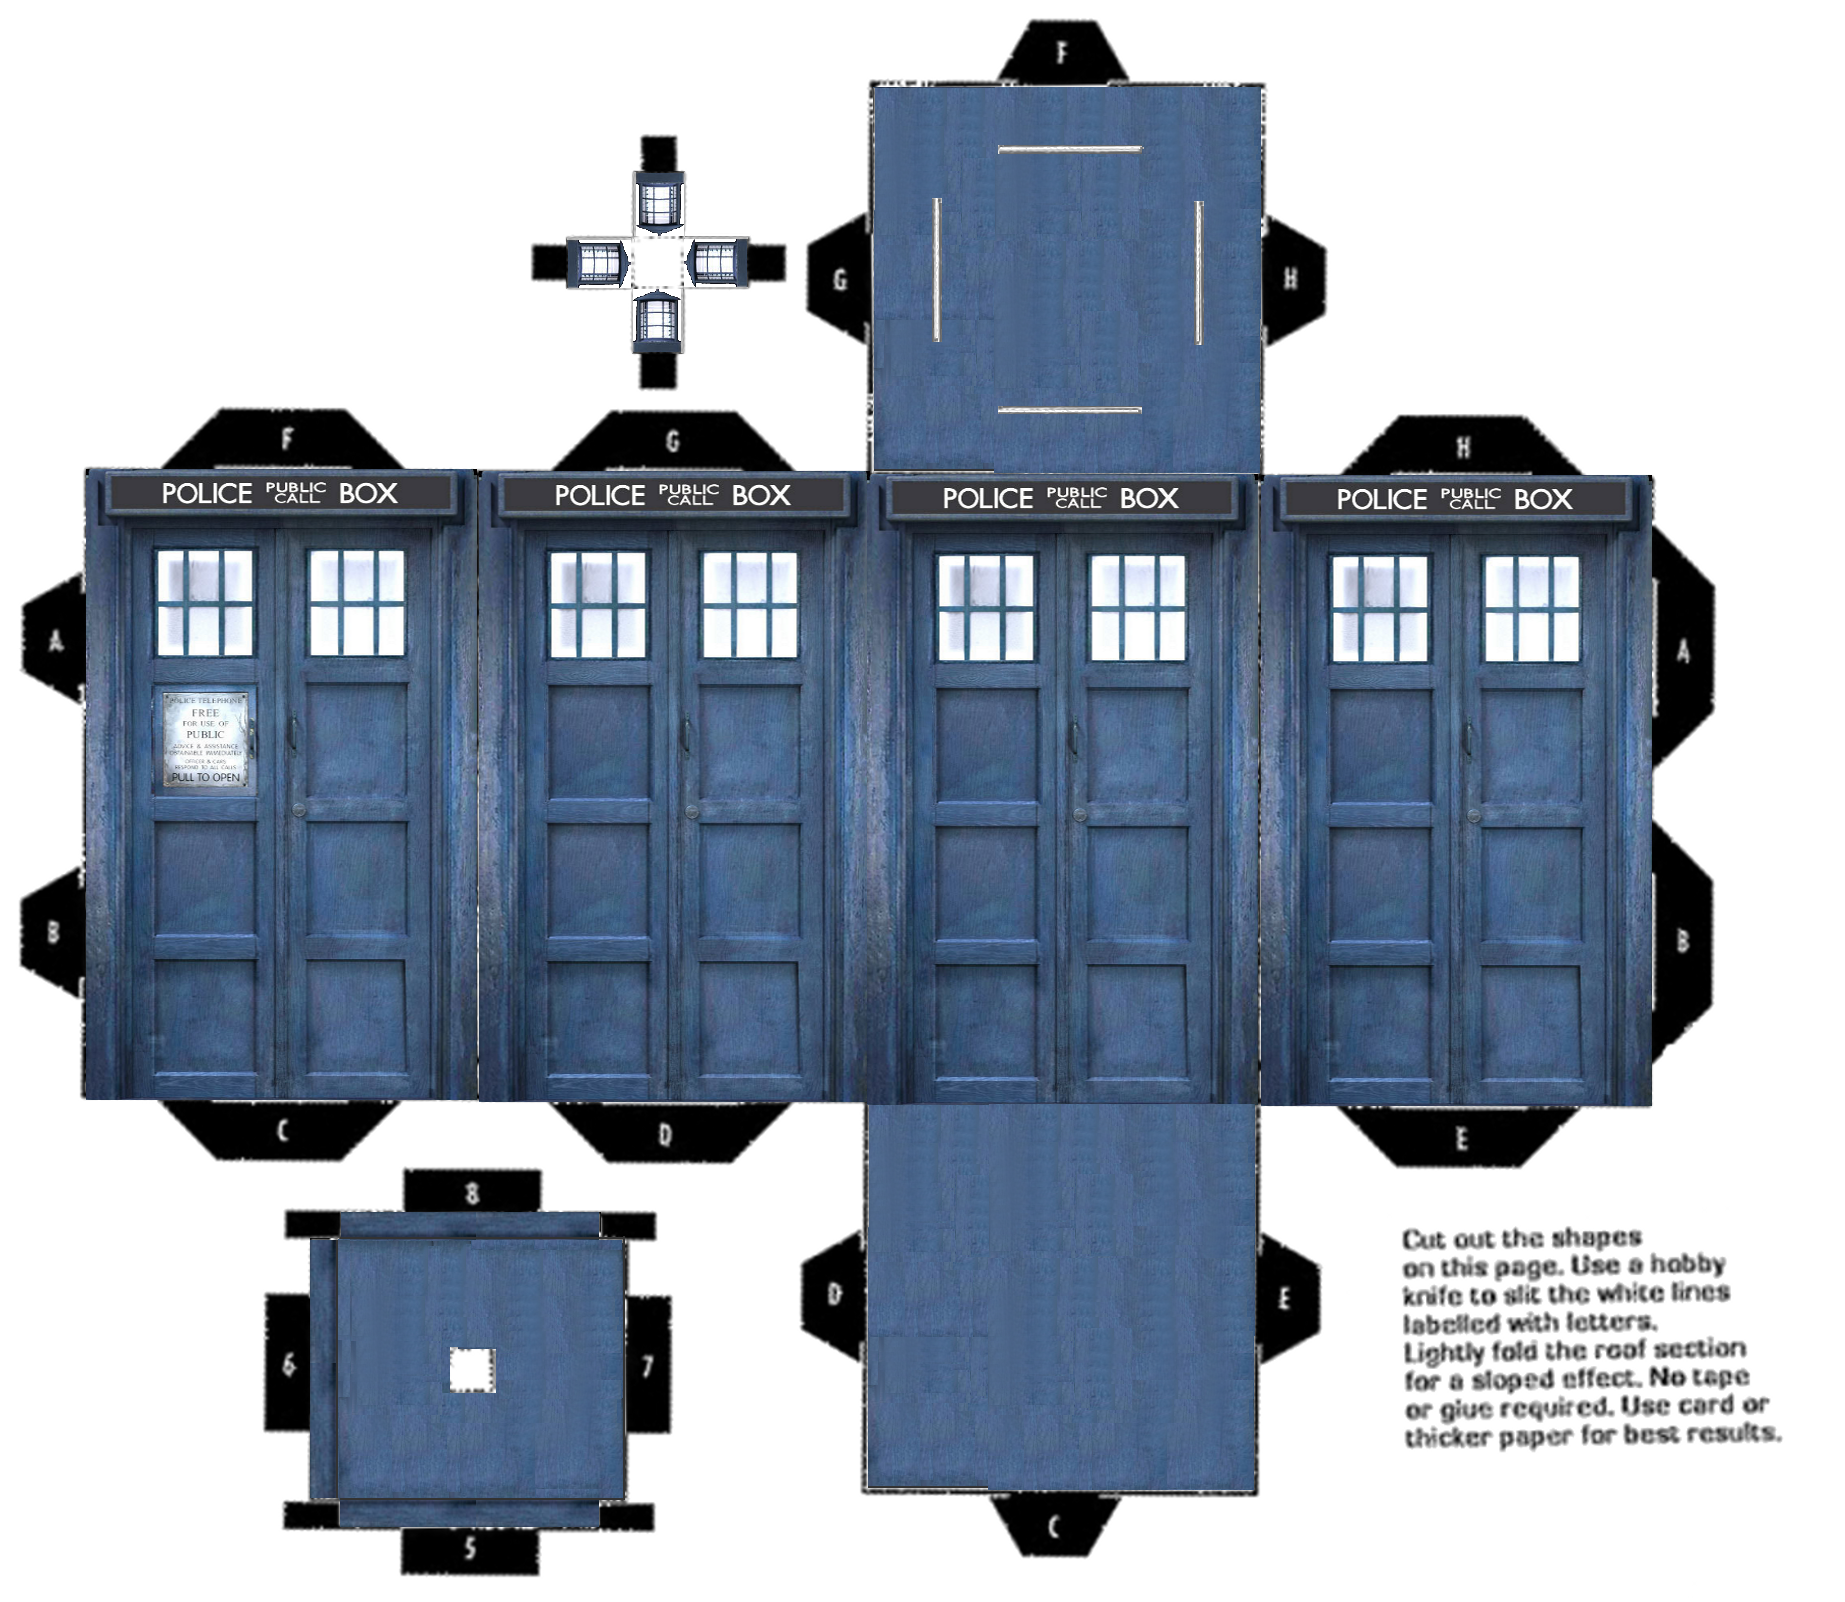 image relating to Tardis Printable called Printable-tardis-3d-coloration Pearltrees